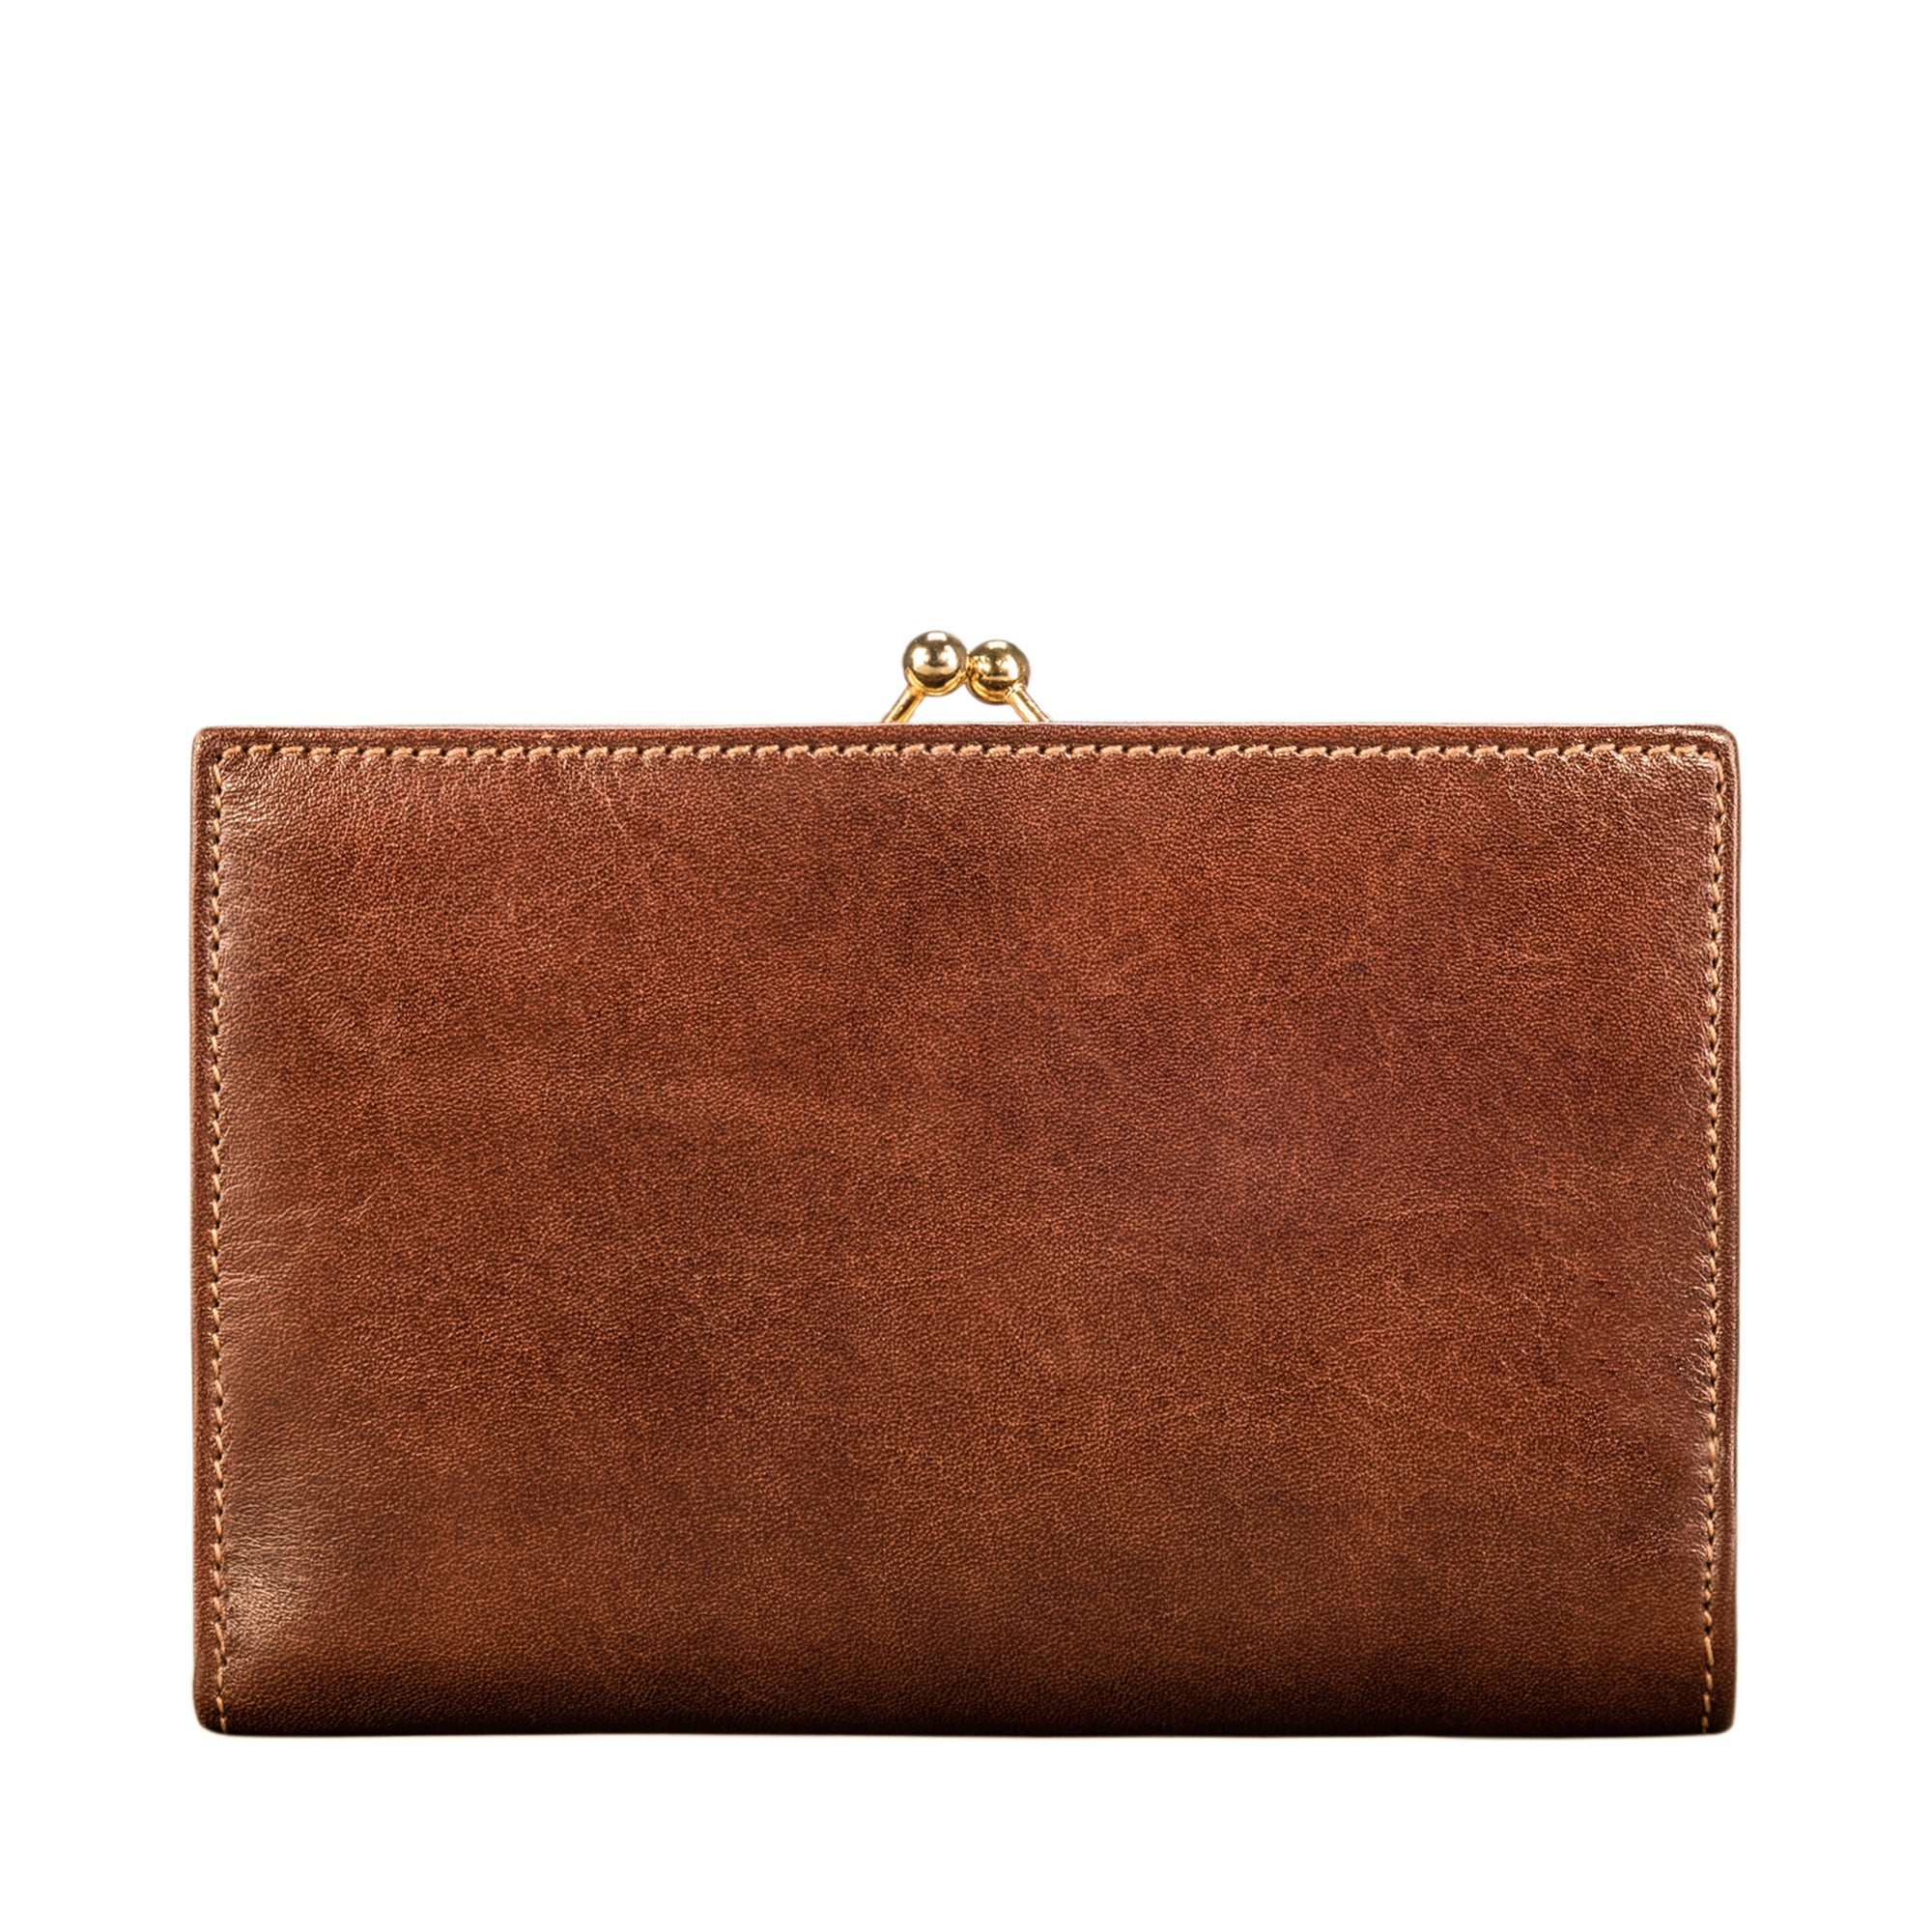 Image 2 of the 'Marcialla' Large Chestnut Veg-Tanned Leather Italian Purse